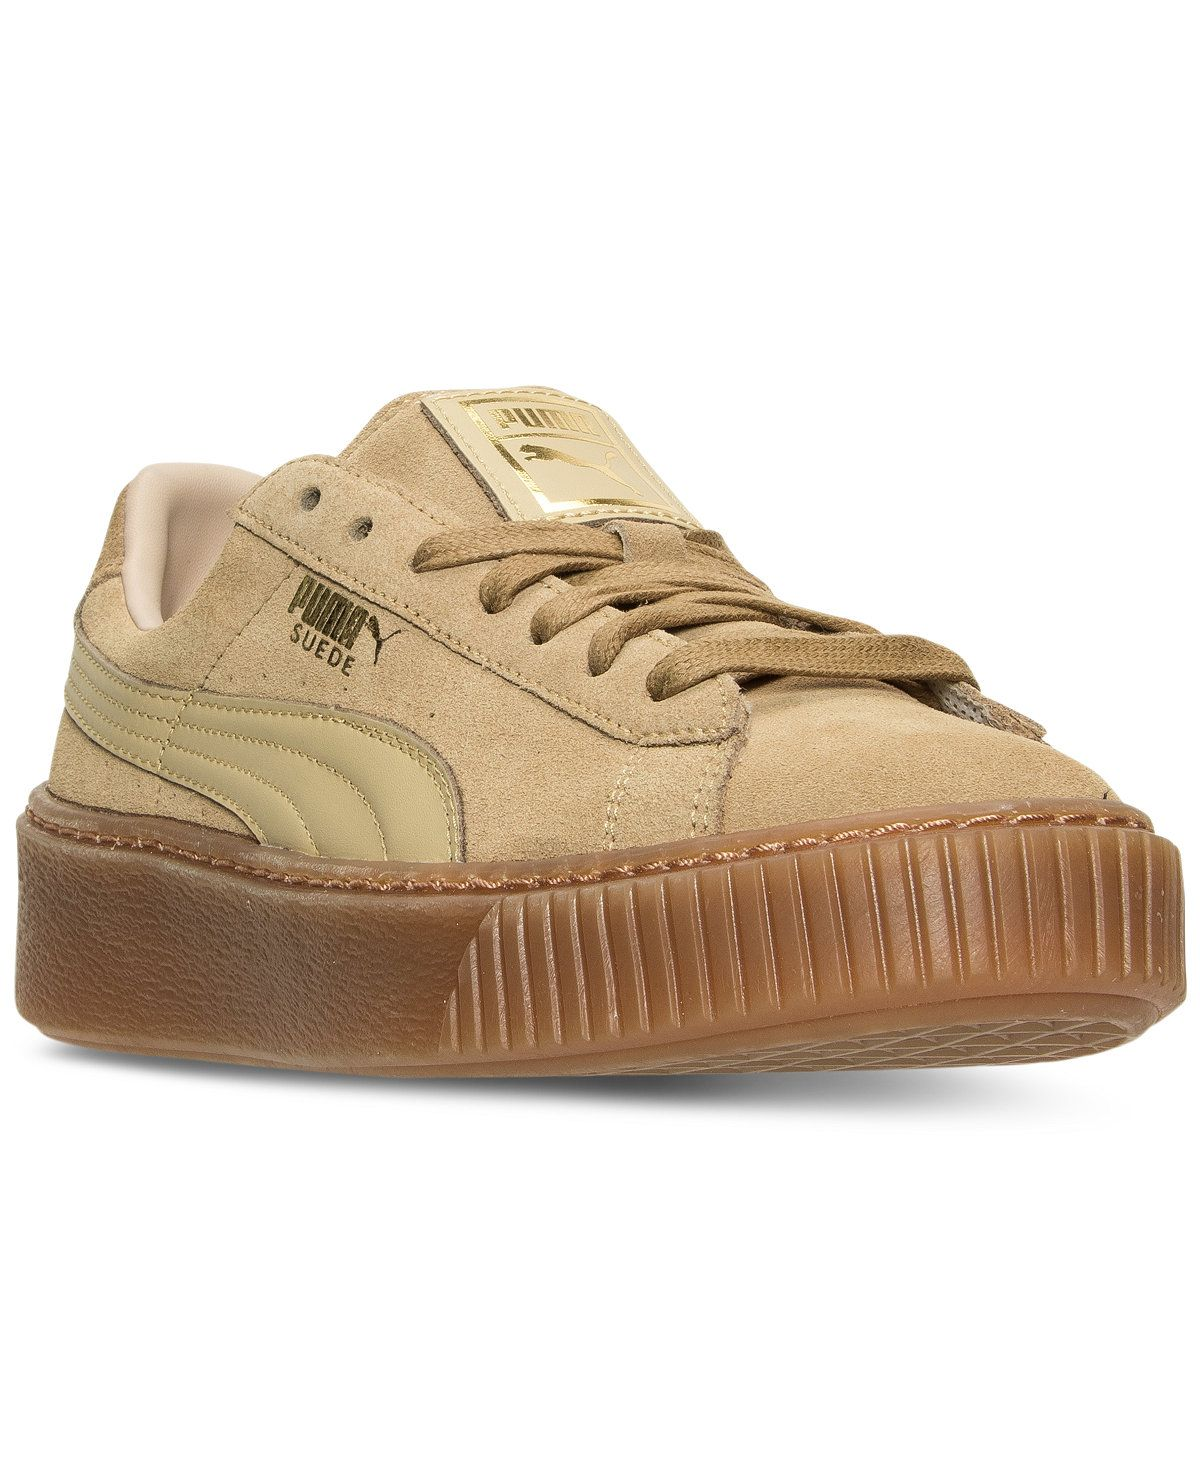 aa97677d27d78 Puma Women s Suede Platform Casual Sneakers from Finish Line - Puma - Shoes  - Macy s